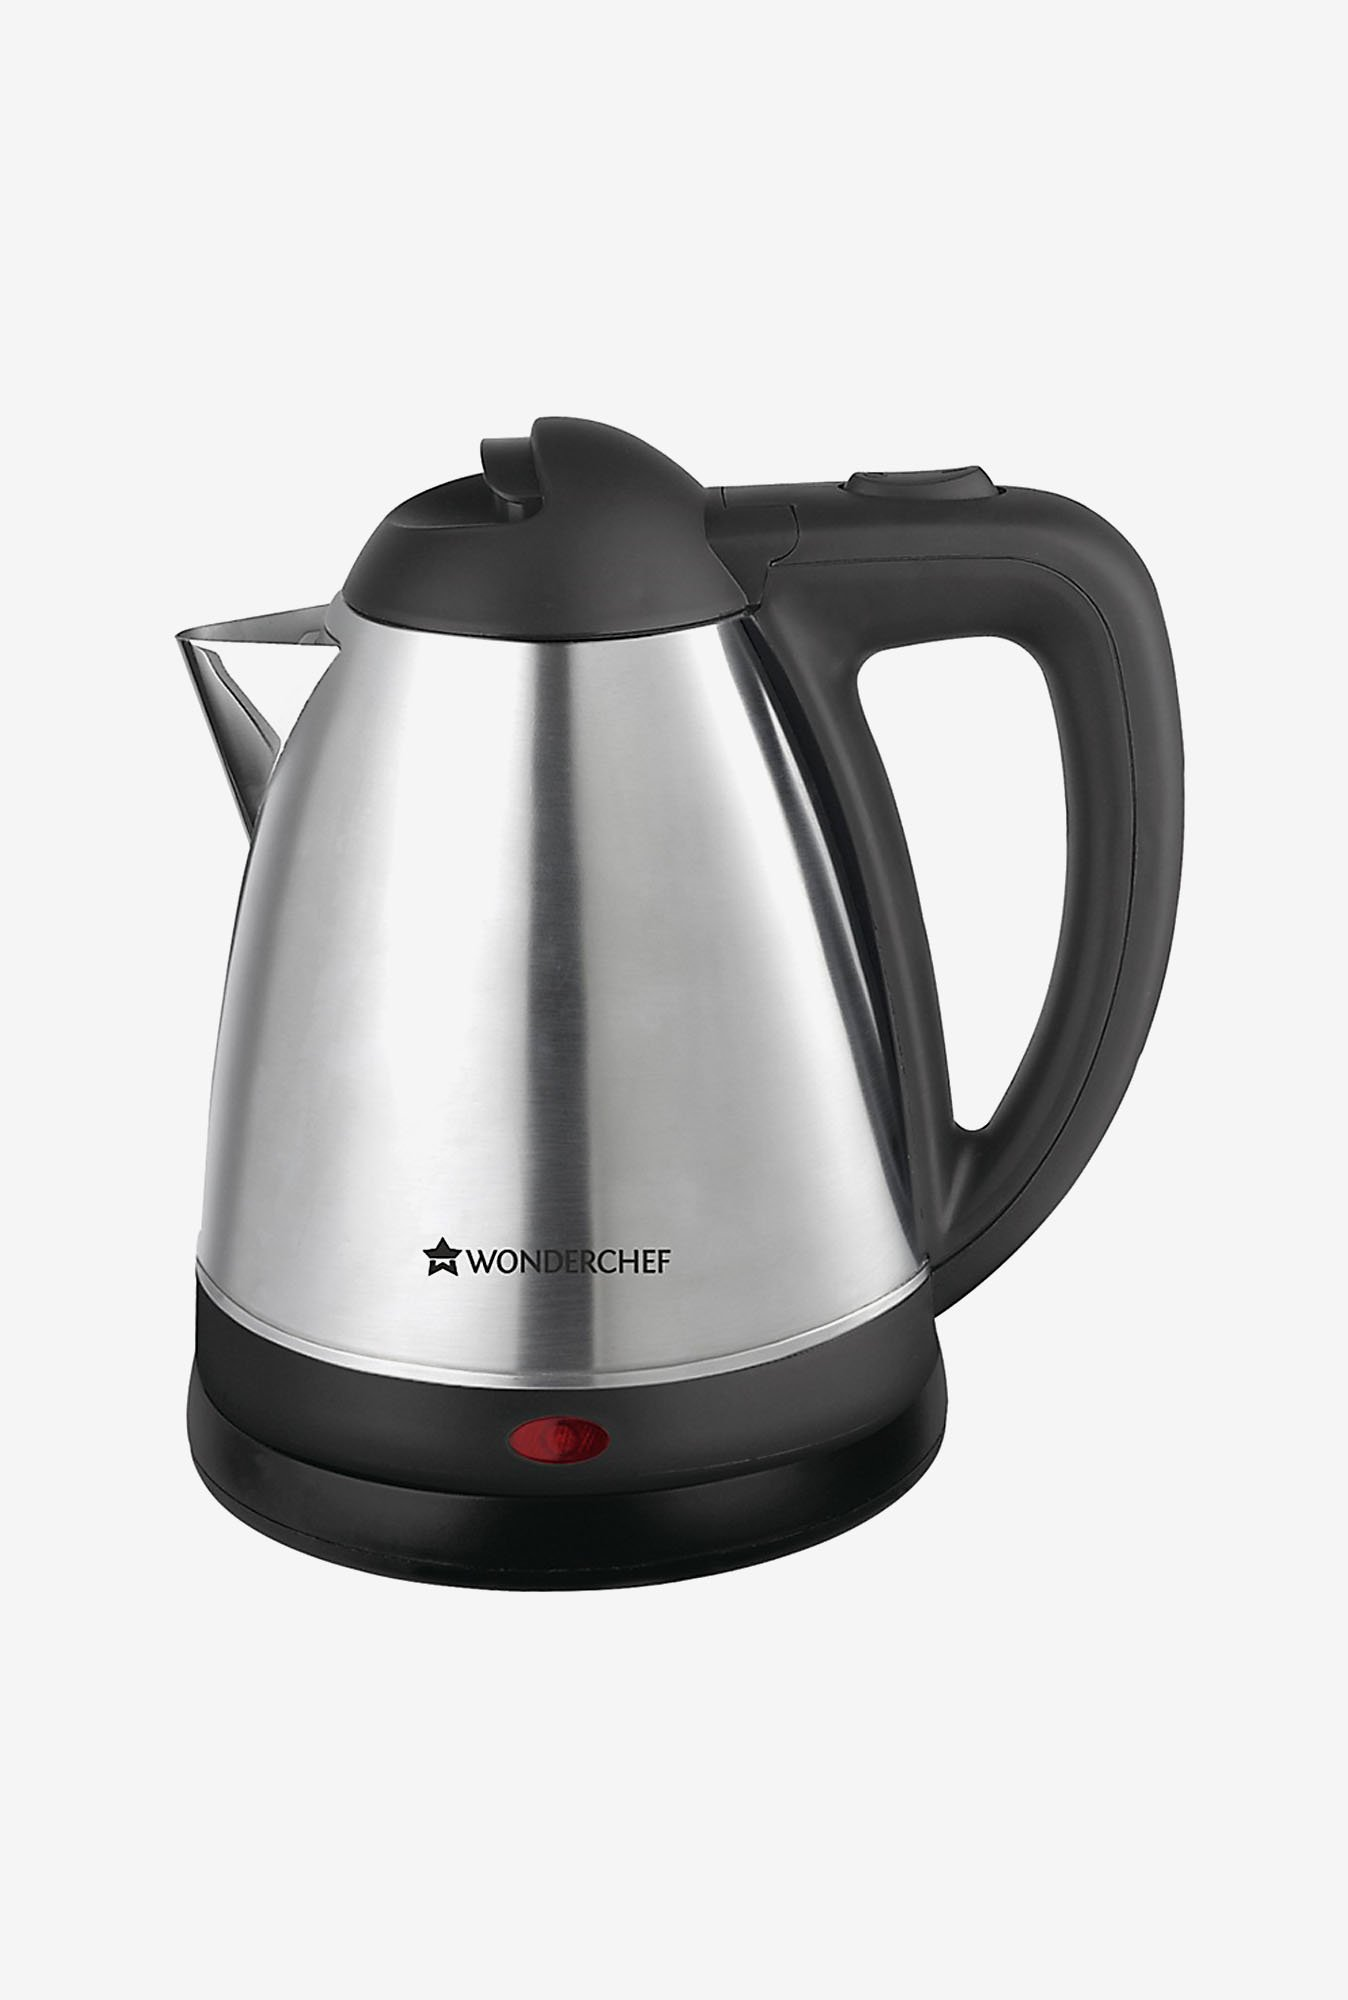 Wonderchef Prato 1.5 Litre Electric Kettle